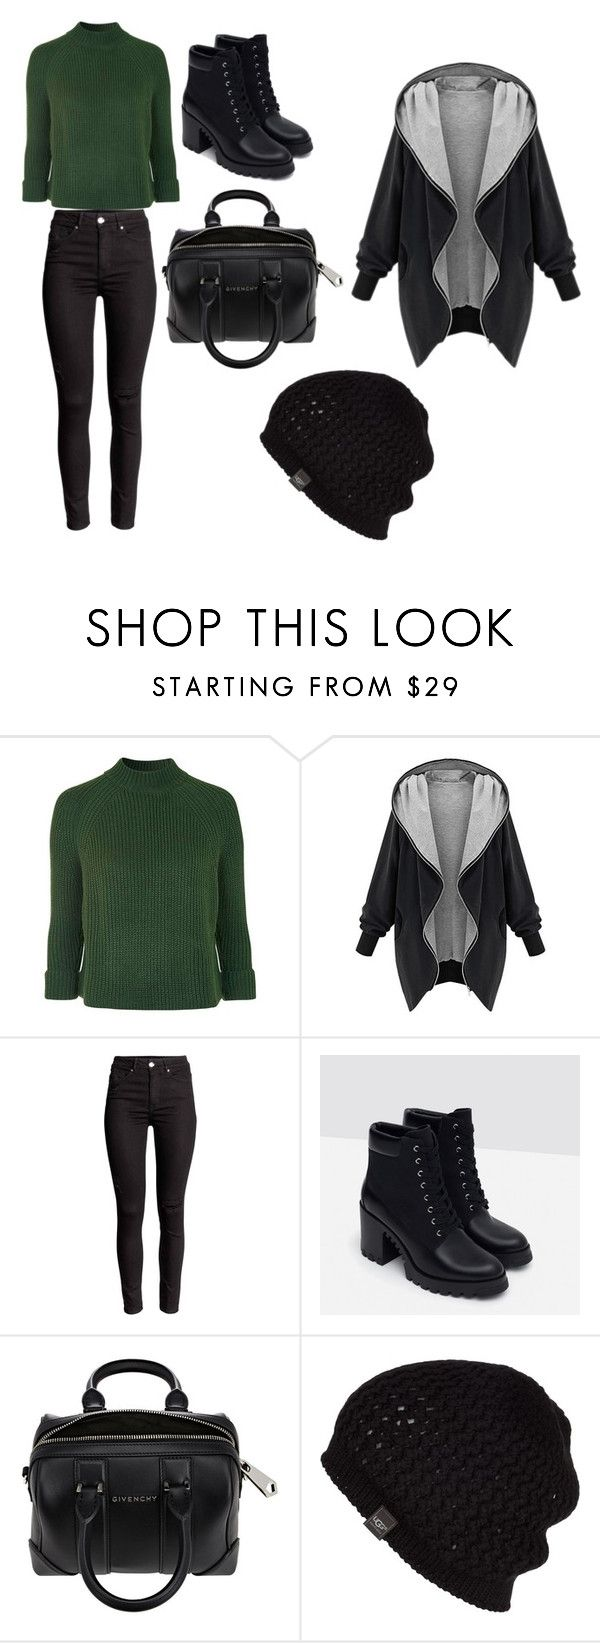 """Winter"" by sydneybushh ❤ liked on Polyvore featuring Topshop, Zara, Givenchy, UGG Australia, women's clothing, women, female, woman, misses and juniors"